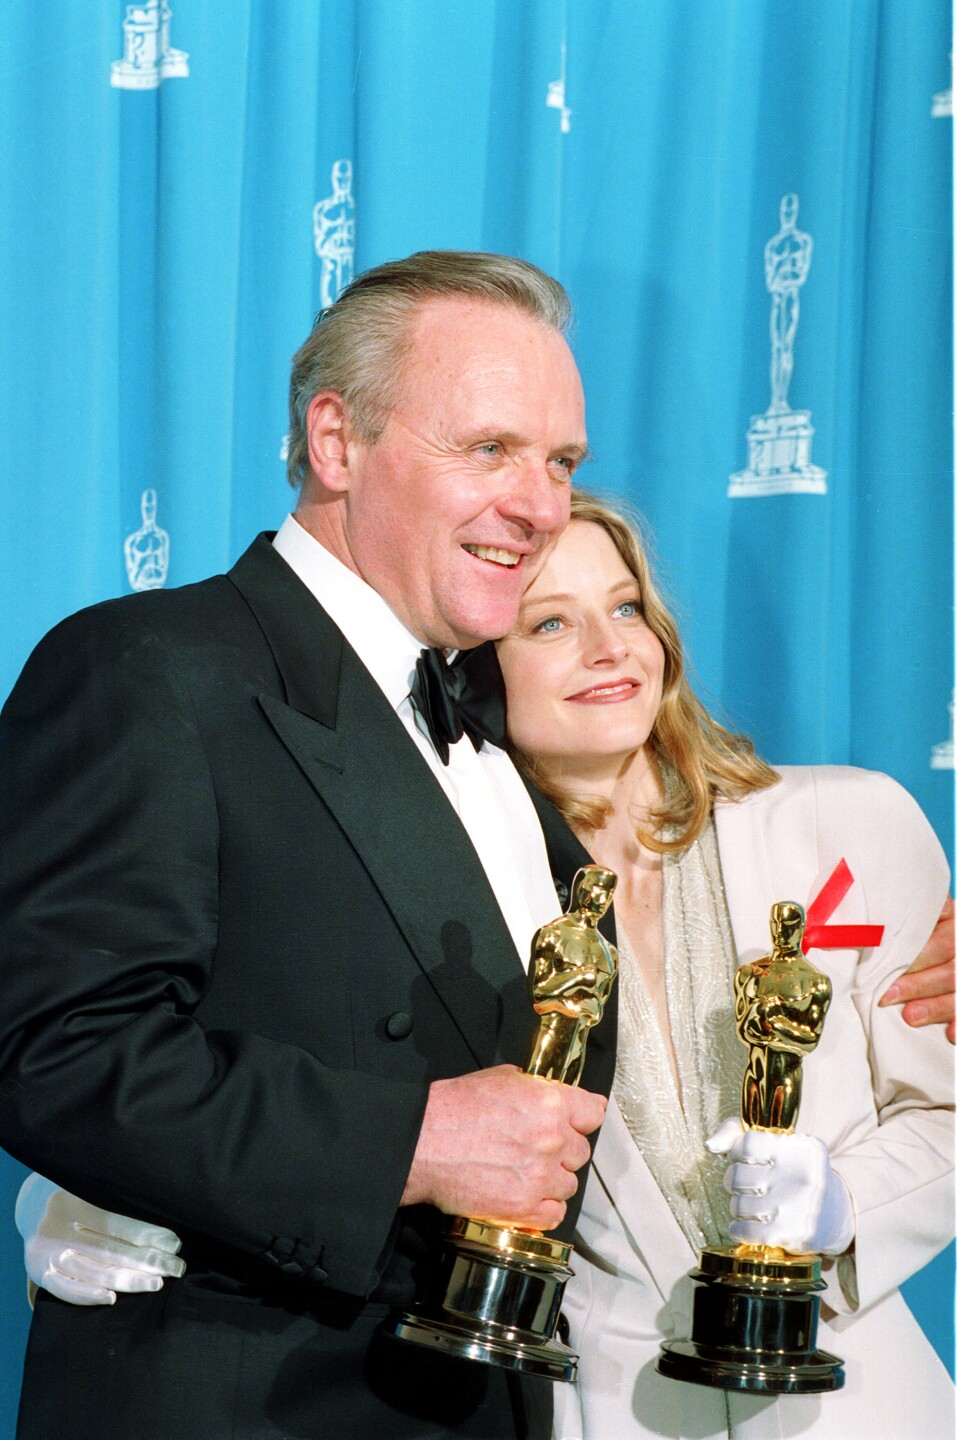 Anthony Hopkins and Jodie Foster hold Oscars after winning for 'The Silence of the Lambs'